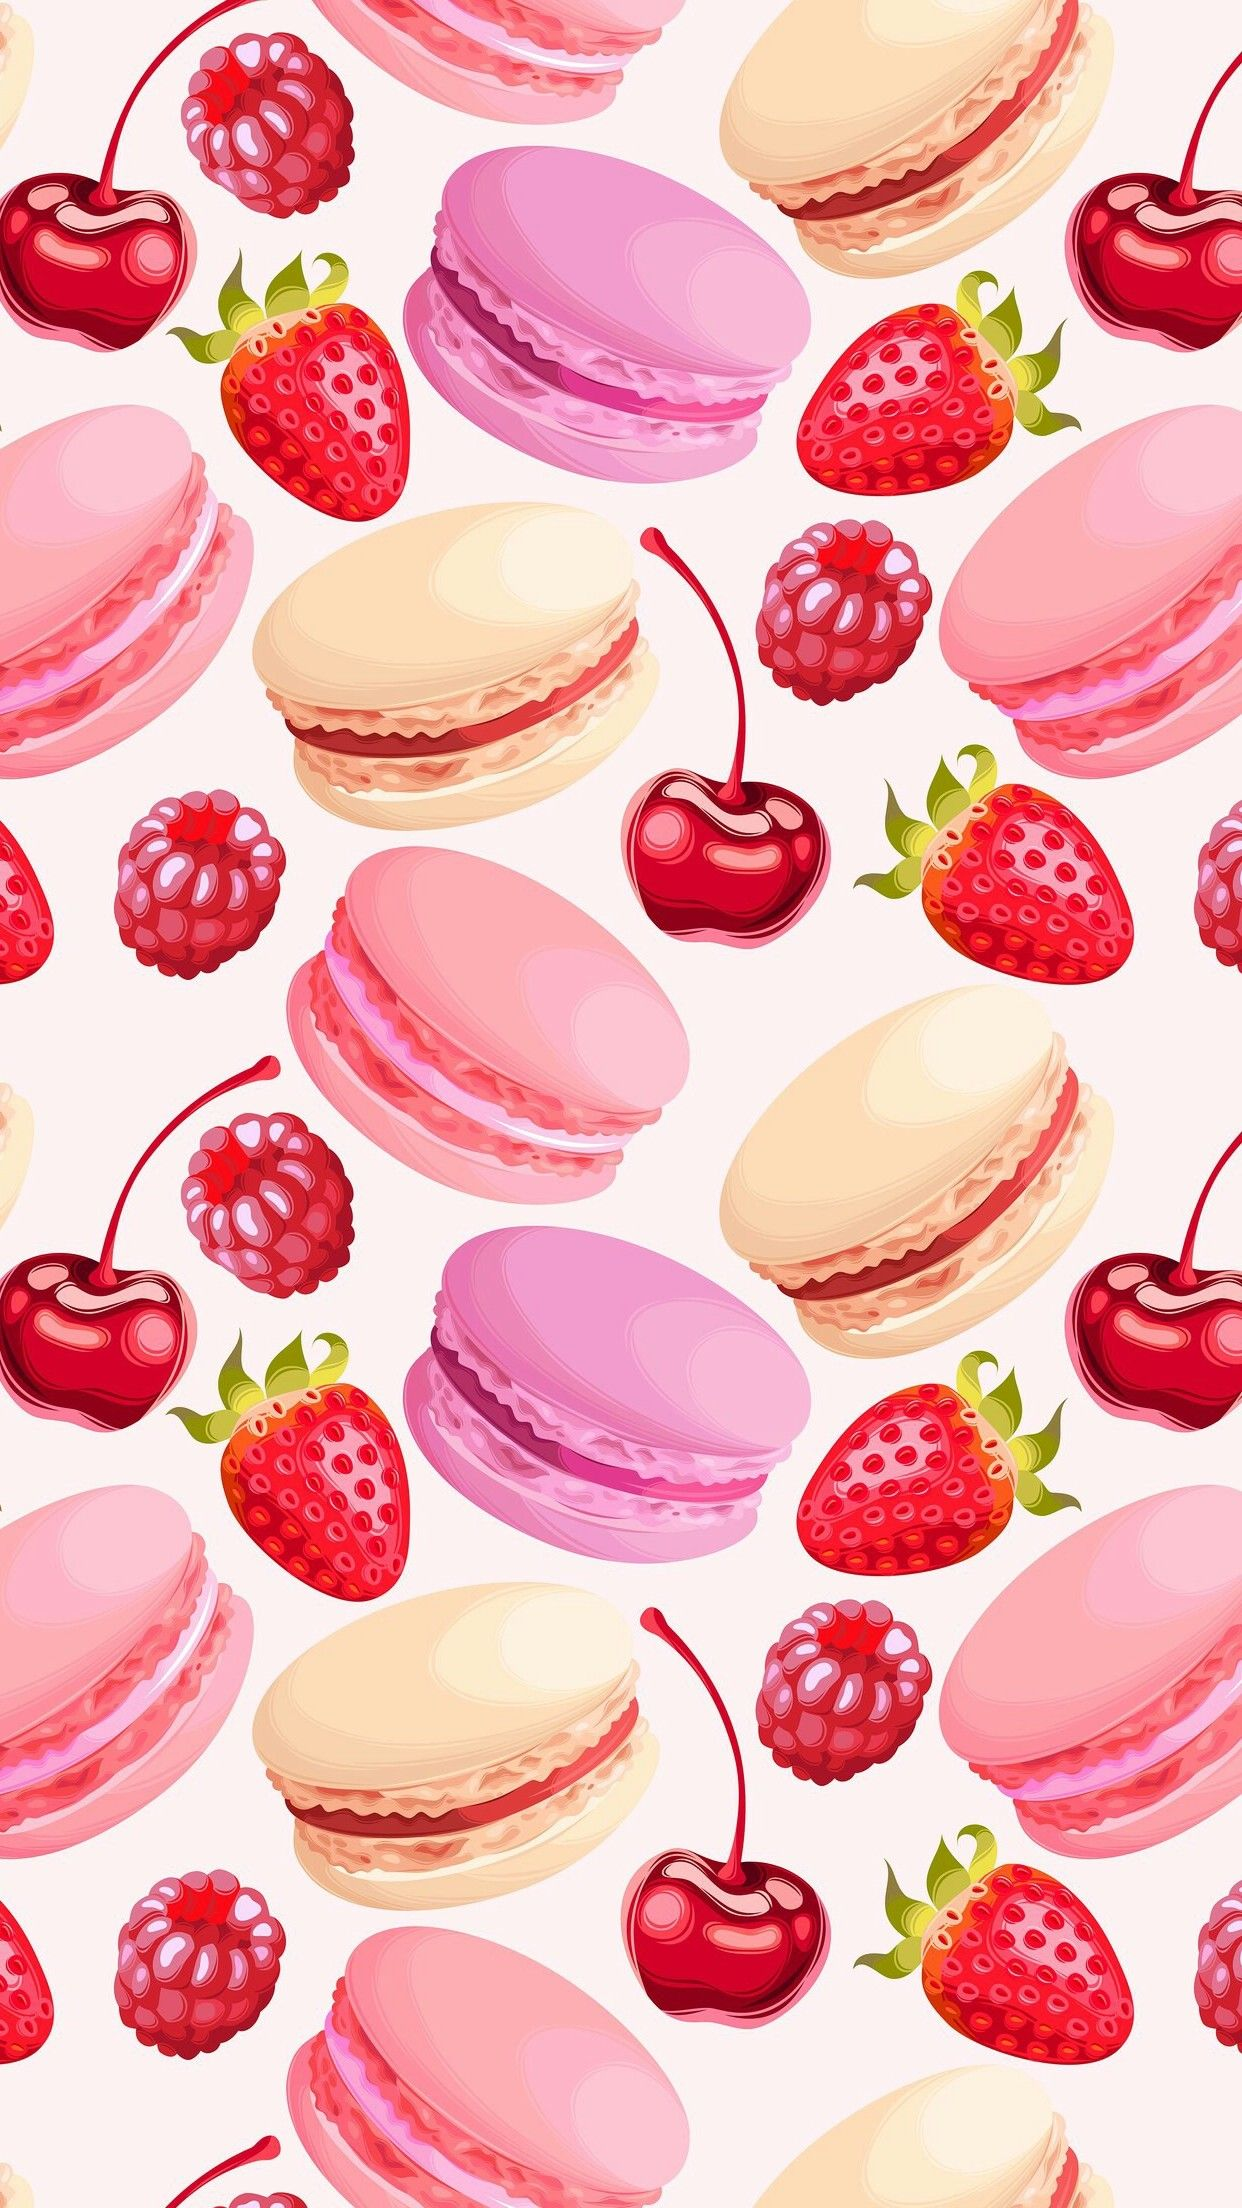 Cute girly macaroon wallpaper for iphone 7 macaroons girly and cute girly macaroon wallpaper for iphone 7 best iphone wallpaper voltagebd Choice Image